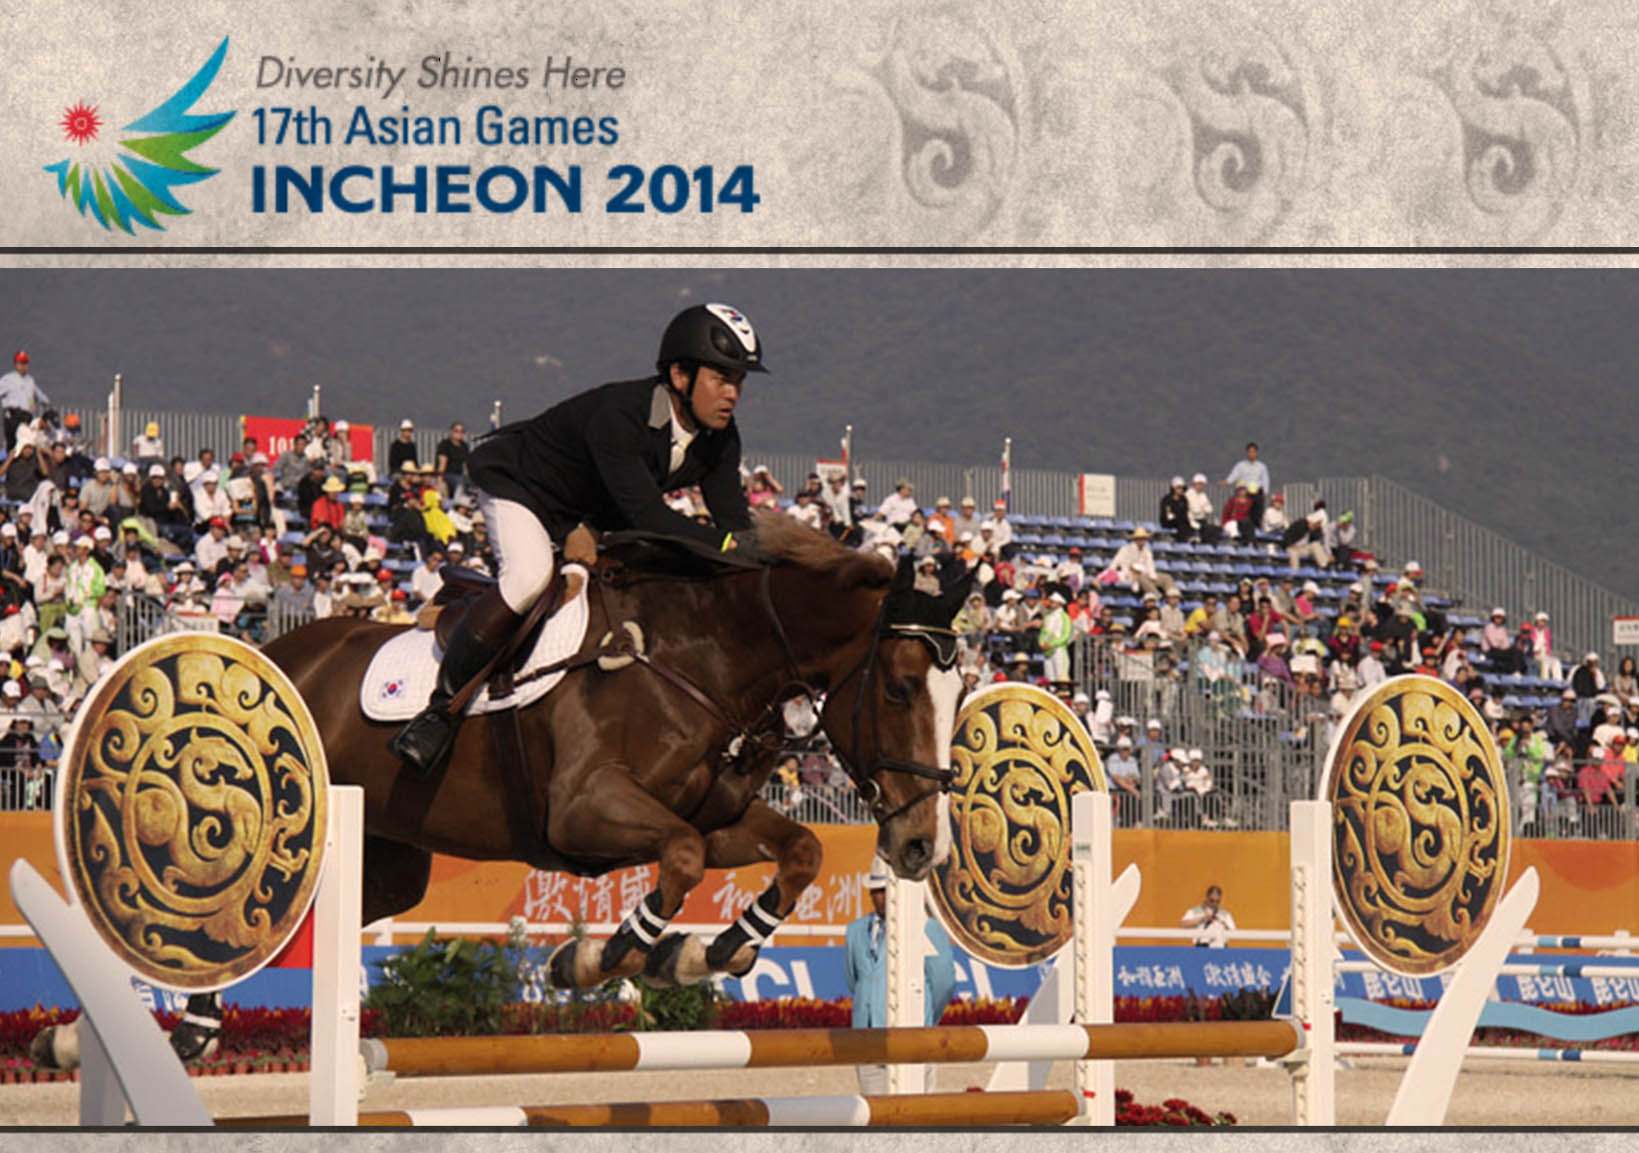 Horse Times Egypt: Equestrian Magazine :News :2014 ASIAN GAMES - 17TH EDITION IN INCHEON, SOUTH KOREA